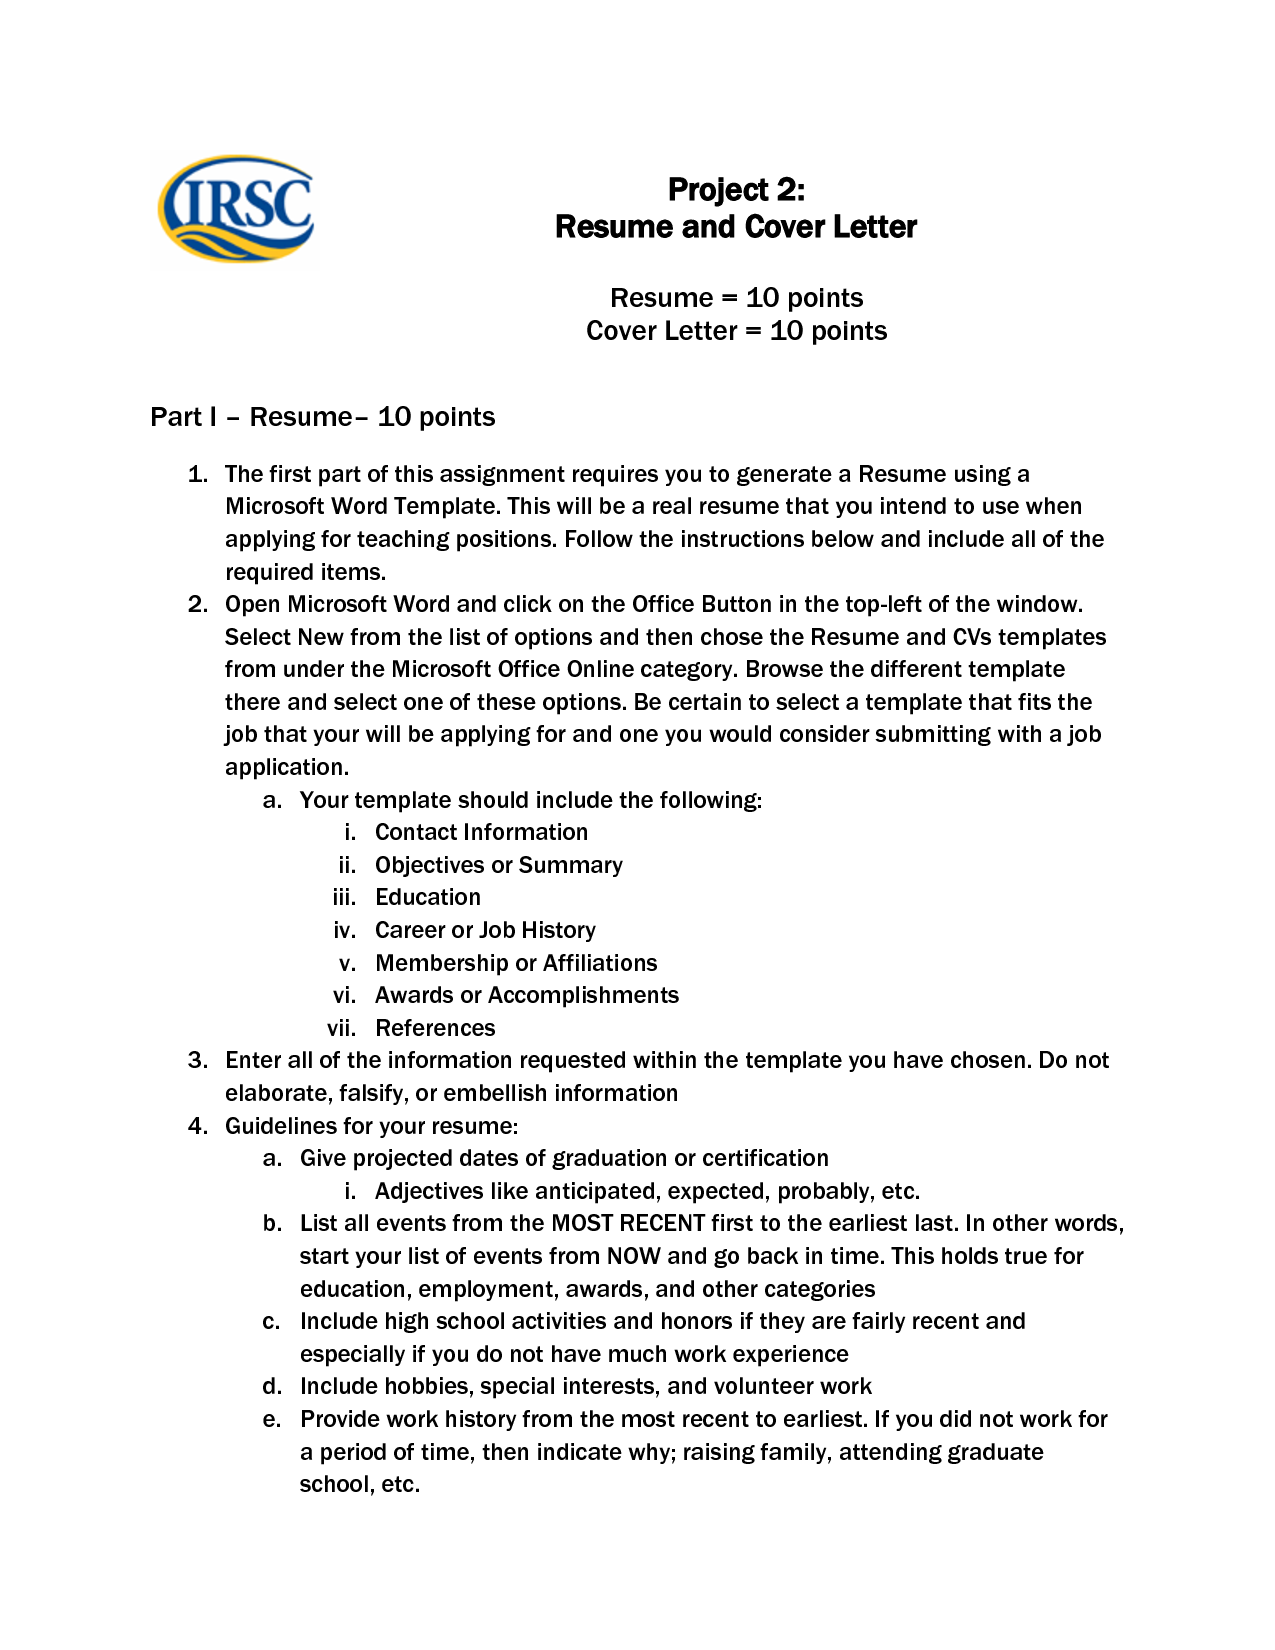 Blank resume forms to fill out httpresumecareerfo blank resume forms to fill out httpresumecareerfoblank resume forms to fill out 4 resume career termplate free pinterest resume form and madrichimfo Choice Image